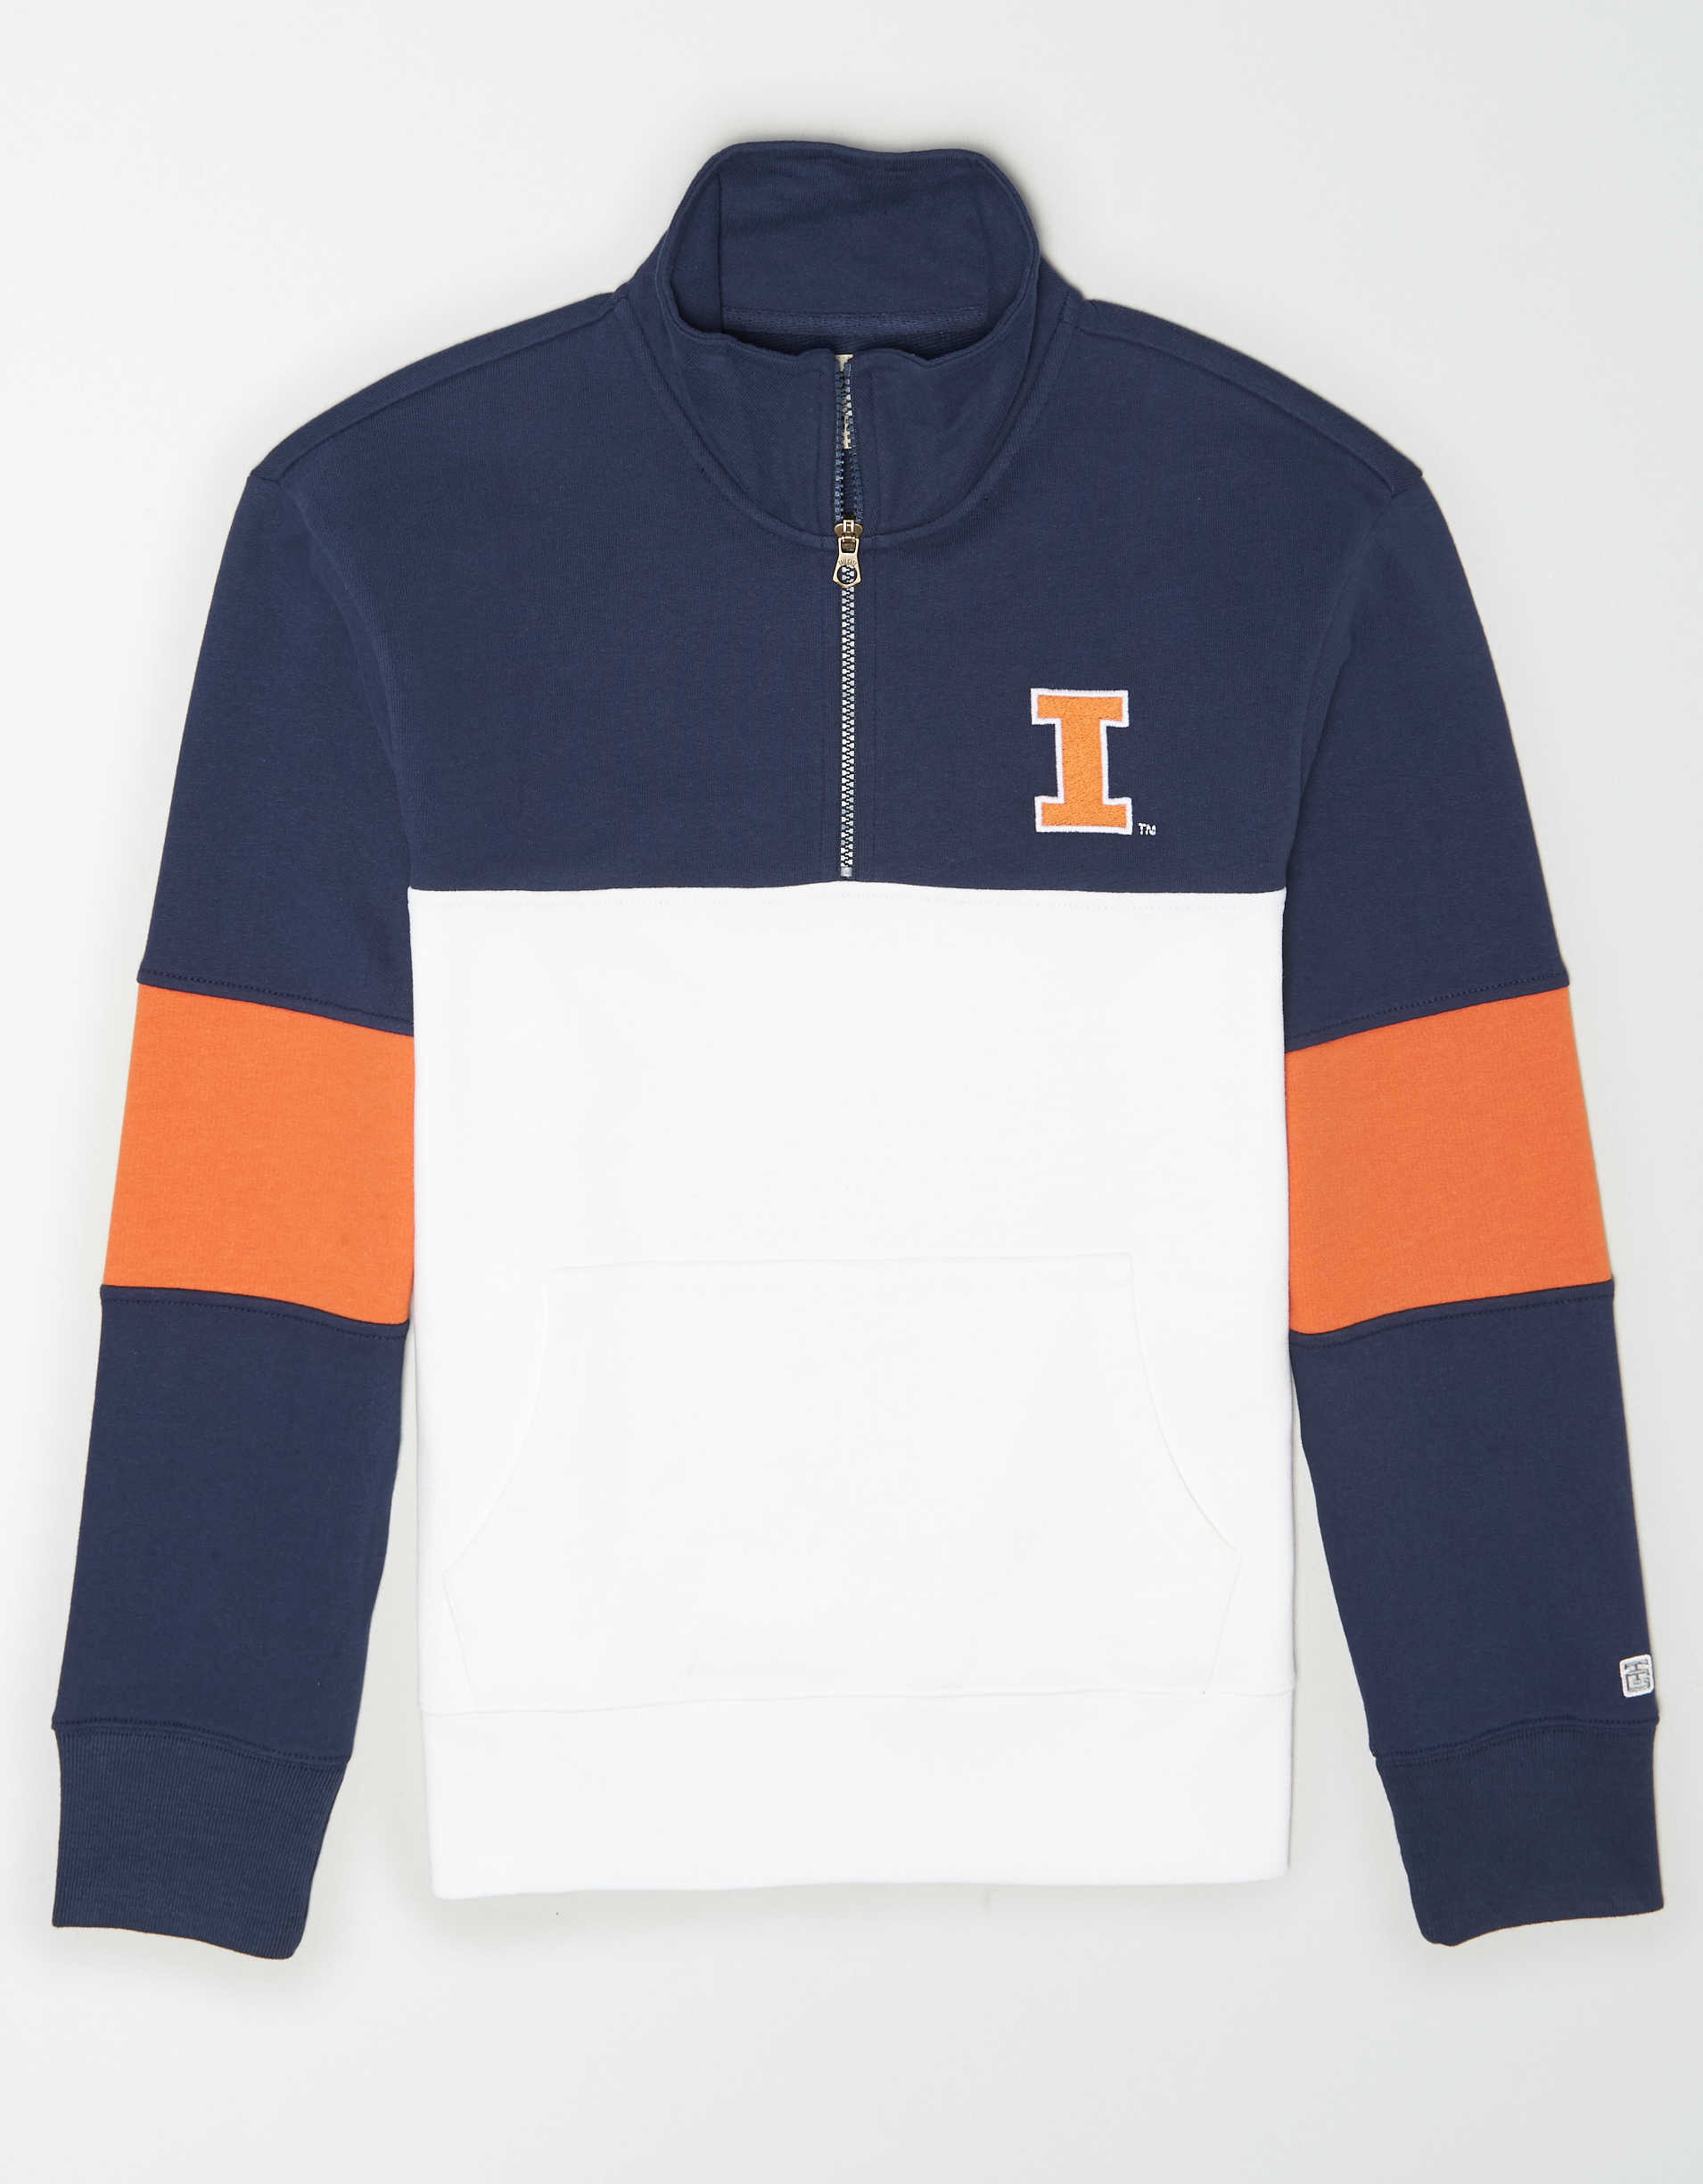 Tailgate Men's Illinois Fighting Illini Quarter-Zip Sweatshirt